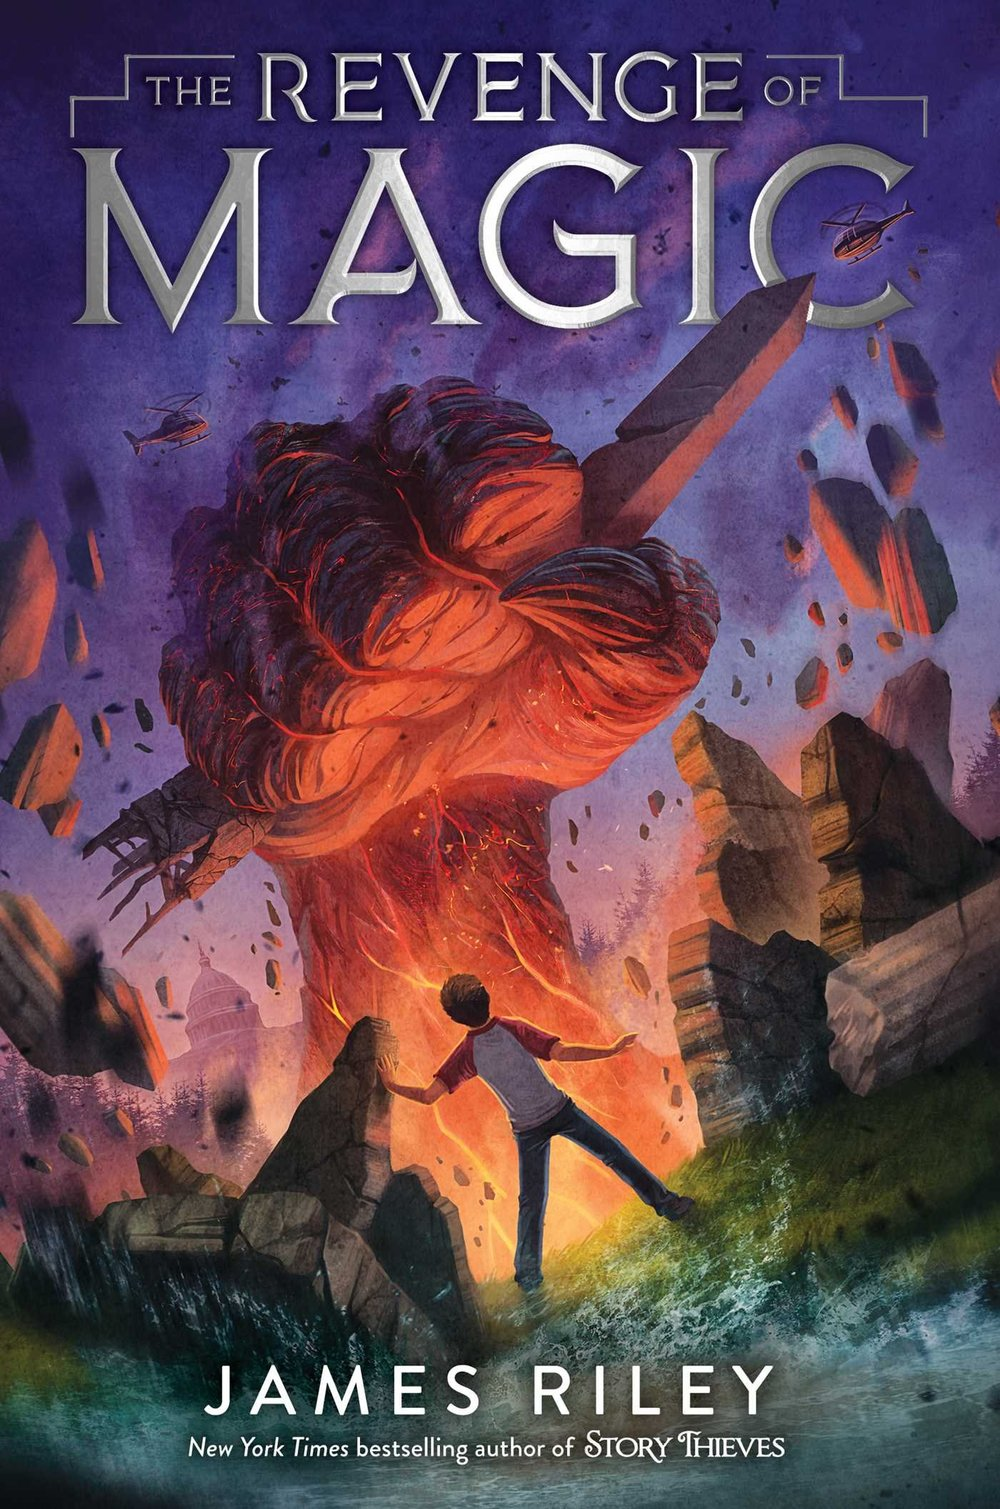 "REVENGE OF MAGIC (BOOK 1) - Thirteen years ago, books of magic were discovered in various sites around the world alongside the bones of dragons. Only those born after ""Discovery Day"" have the power to use the magic.Now, on a vacation to Washington, DC, Fort Fitzgerald's father is lost when a giant creature bursts through the earth, attacking the city. Fort is devastated, until an opportunity for justice arrives six months later, when a man named Dr. Opps invites Fort to a government run school, the Oppenheimer School, to learn magic from those same books.But life's no easier at the school, where secrets abound. What does Jia, Fort's tutor, know about the attacks? Why does Rachel, master of destructive magic, think Fort is out to destroy the school? And why is Fort seeing memories of an expelled girl every time he goes to sleep? If Fort doesn't find out what's hiding within the Oppenheimer School, more attacks will come, and this time, nothing will stop them!BUY: AMAZON 